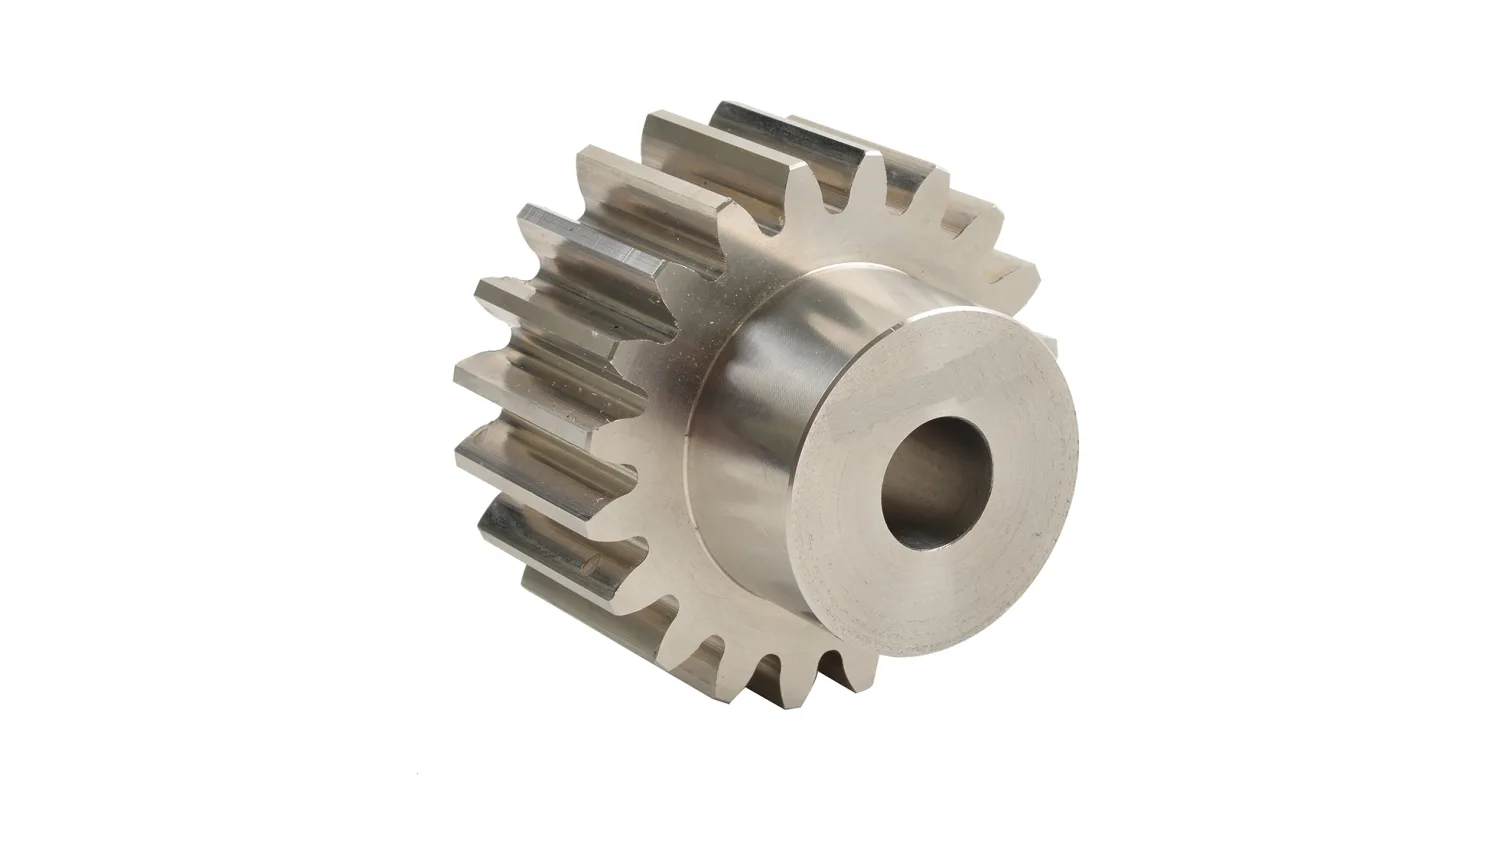 3-Mod-x-39-Tooth-Metric-Spur-Gear-in-Steel